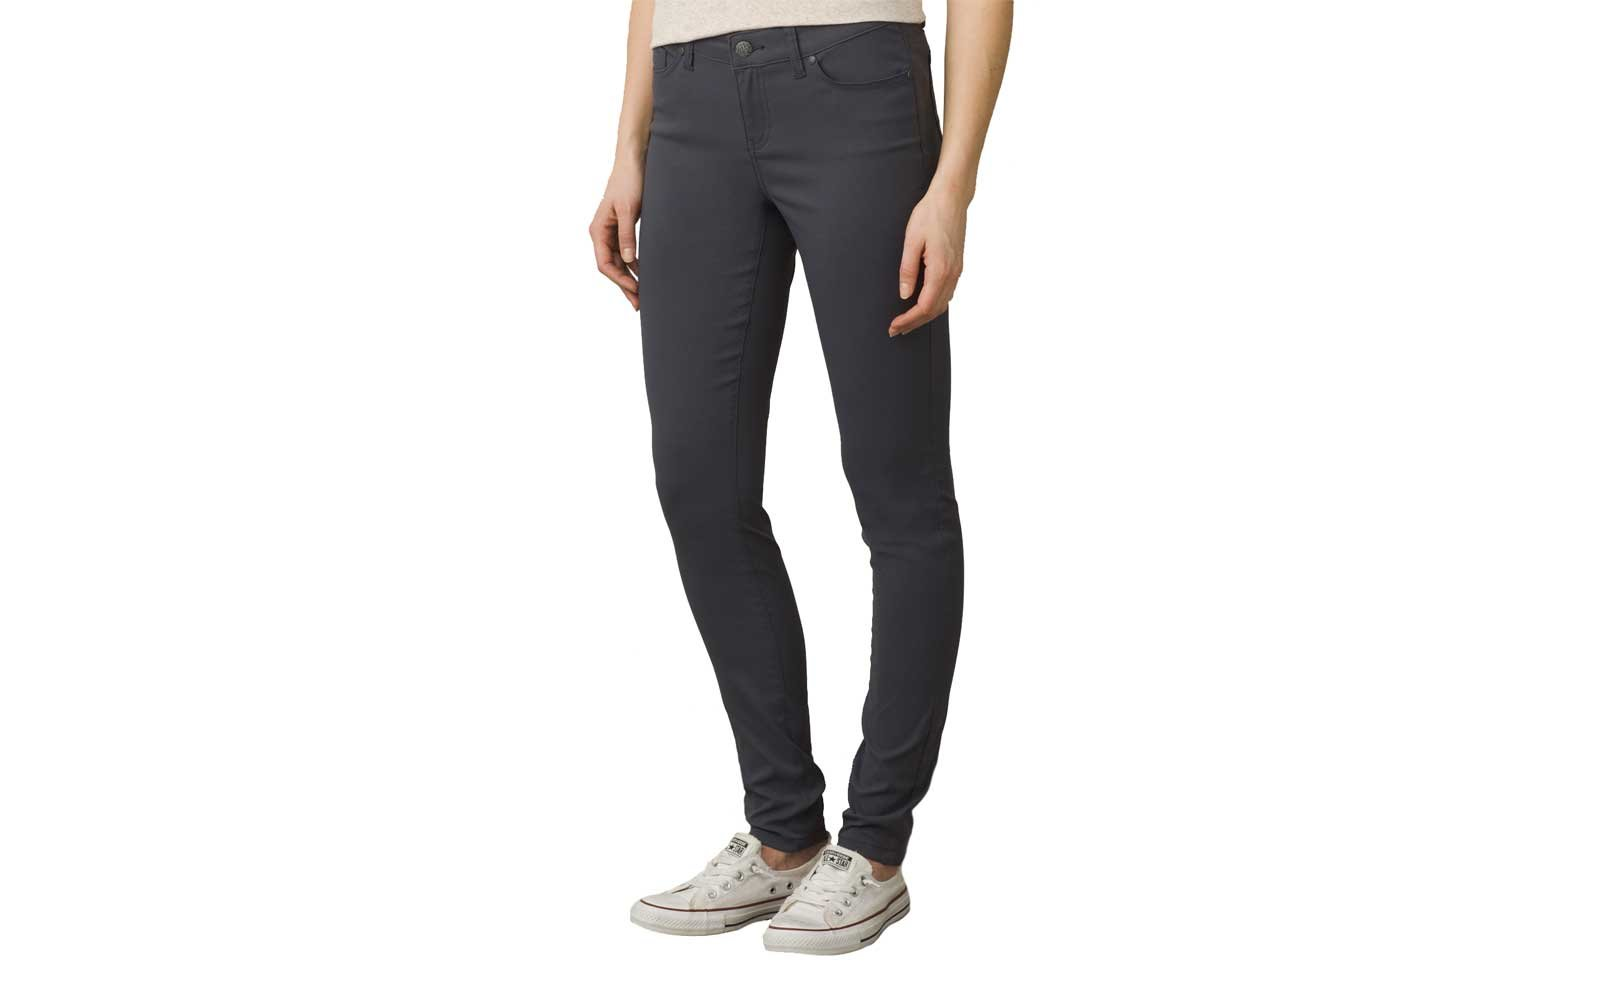 e5c3320a2e The Best Travel Pants for Women Who Hate Flying in Jeans